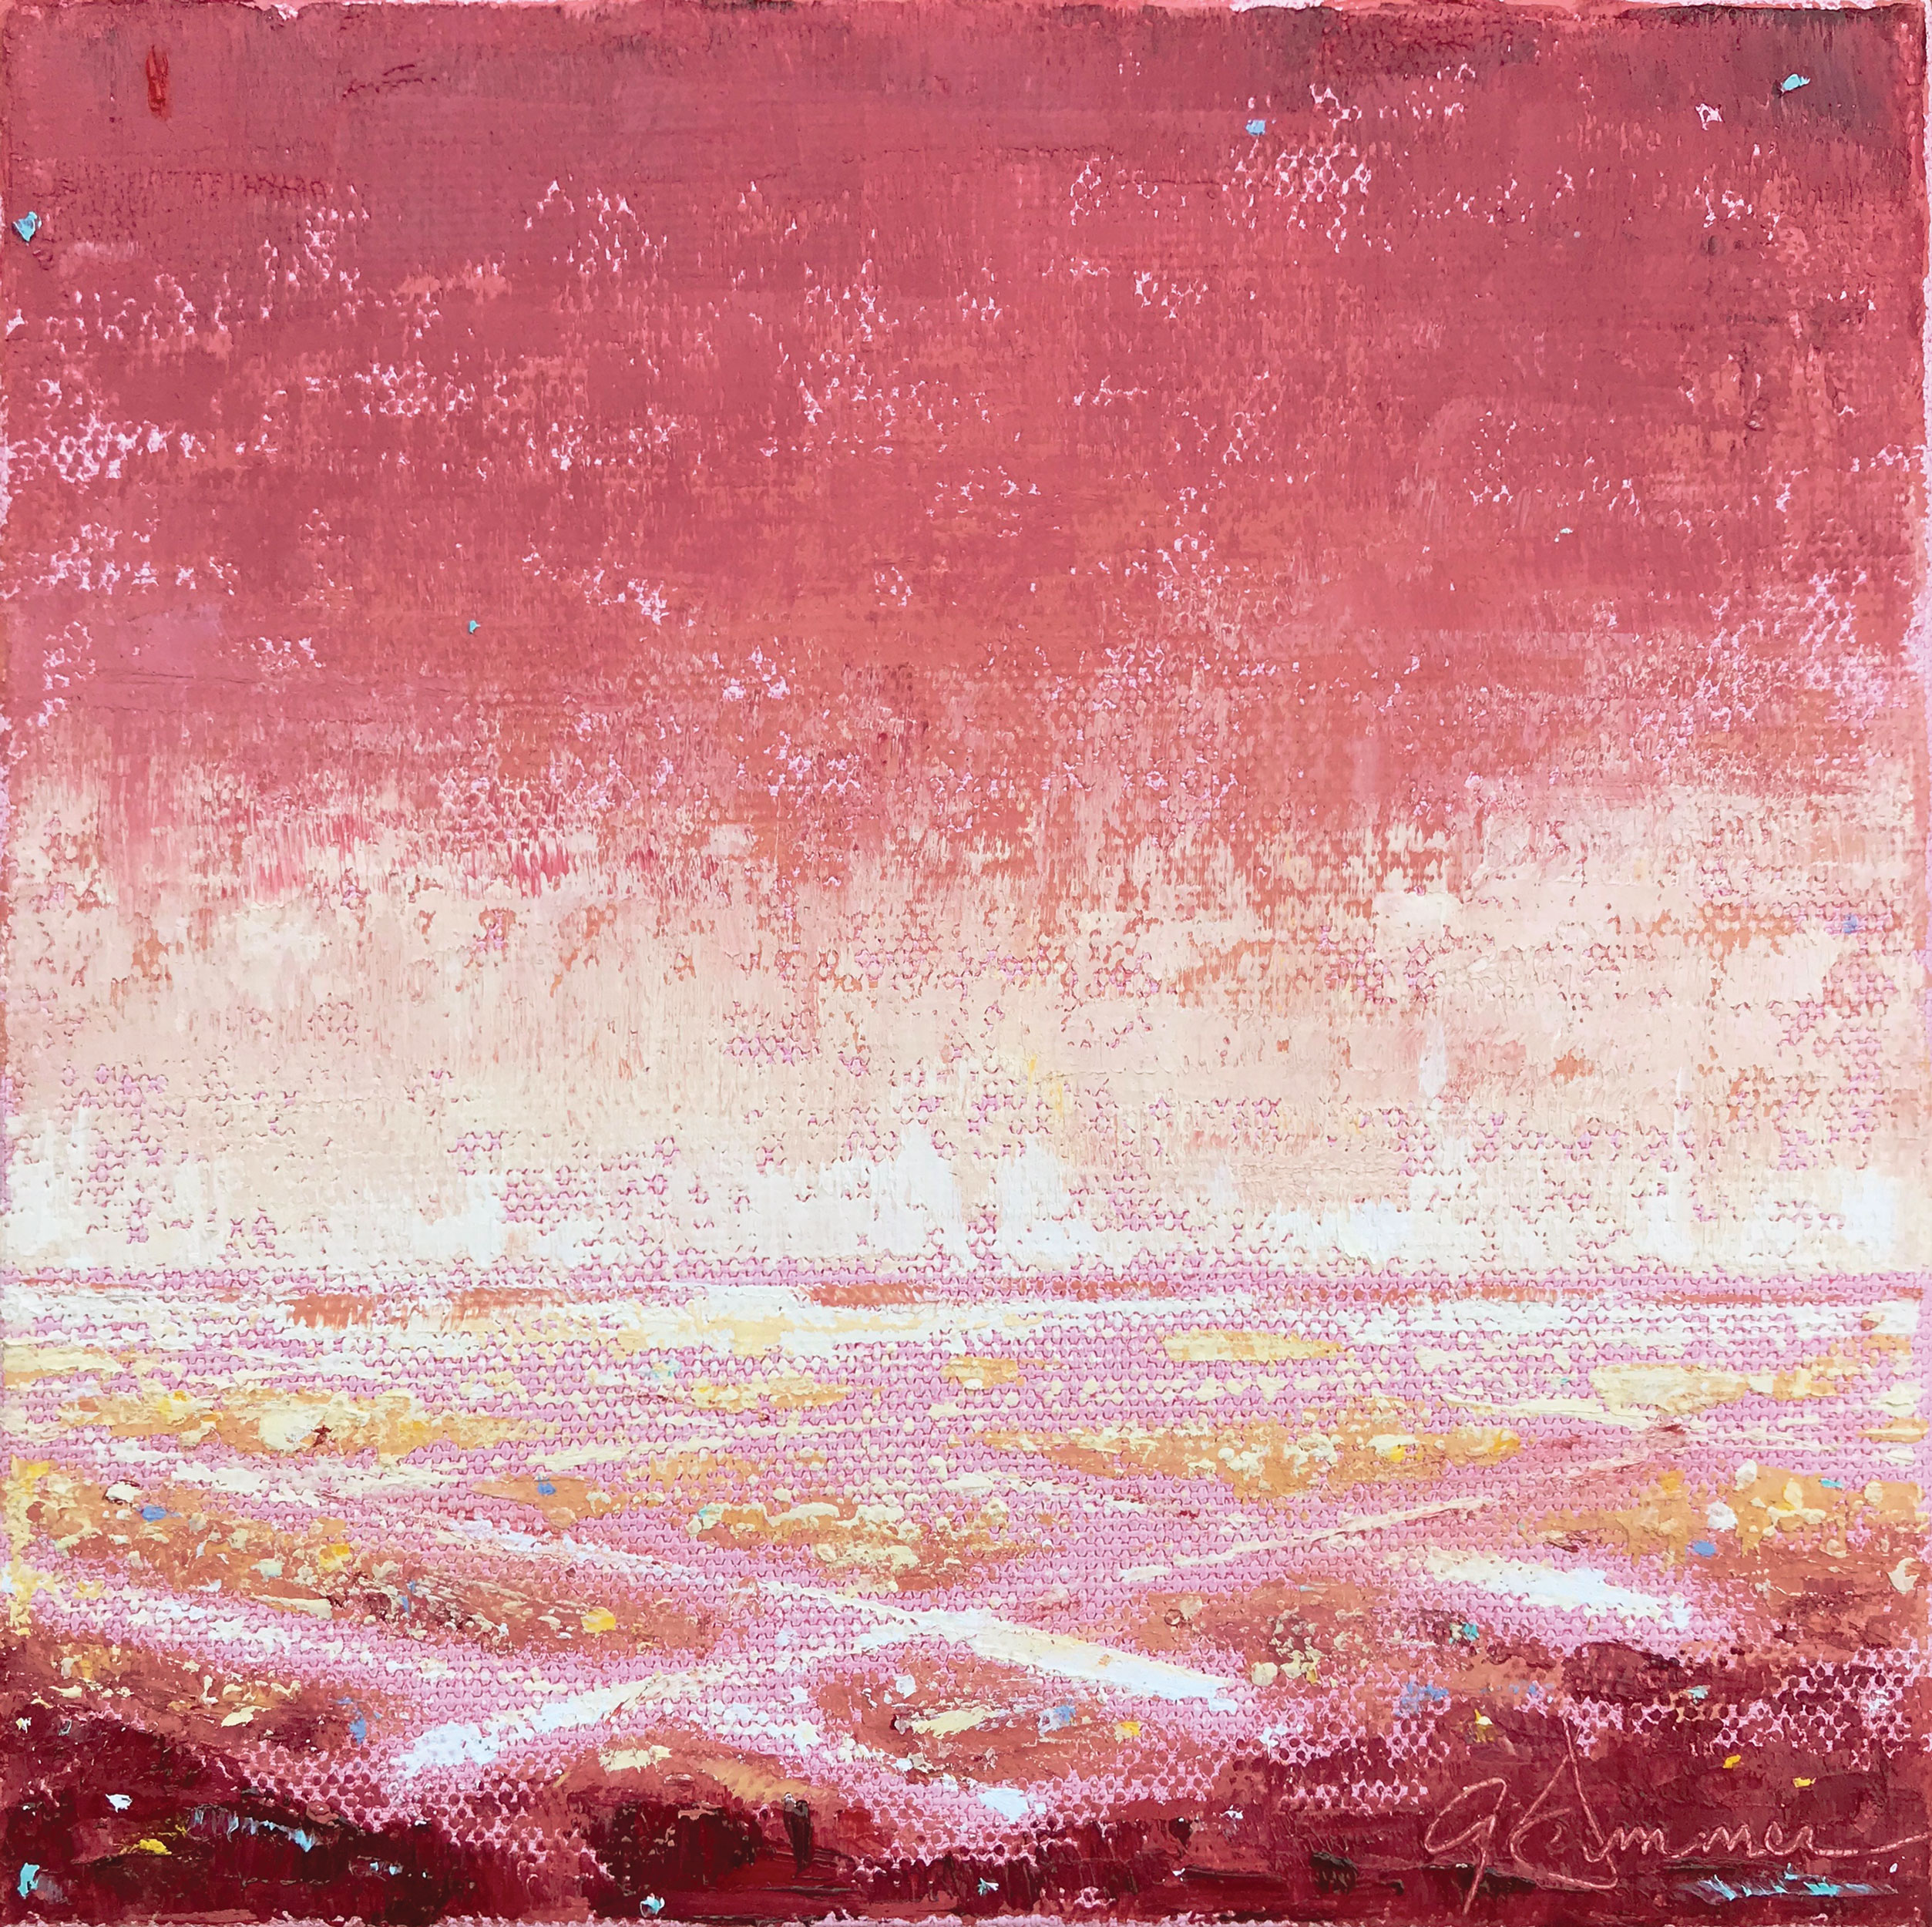 ©Gay-Summer-Rick_On-The-Grid---Red_Oil-on-Canvas_6x6in_np_web